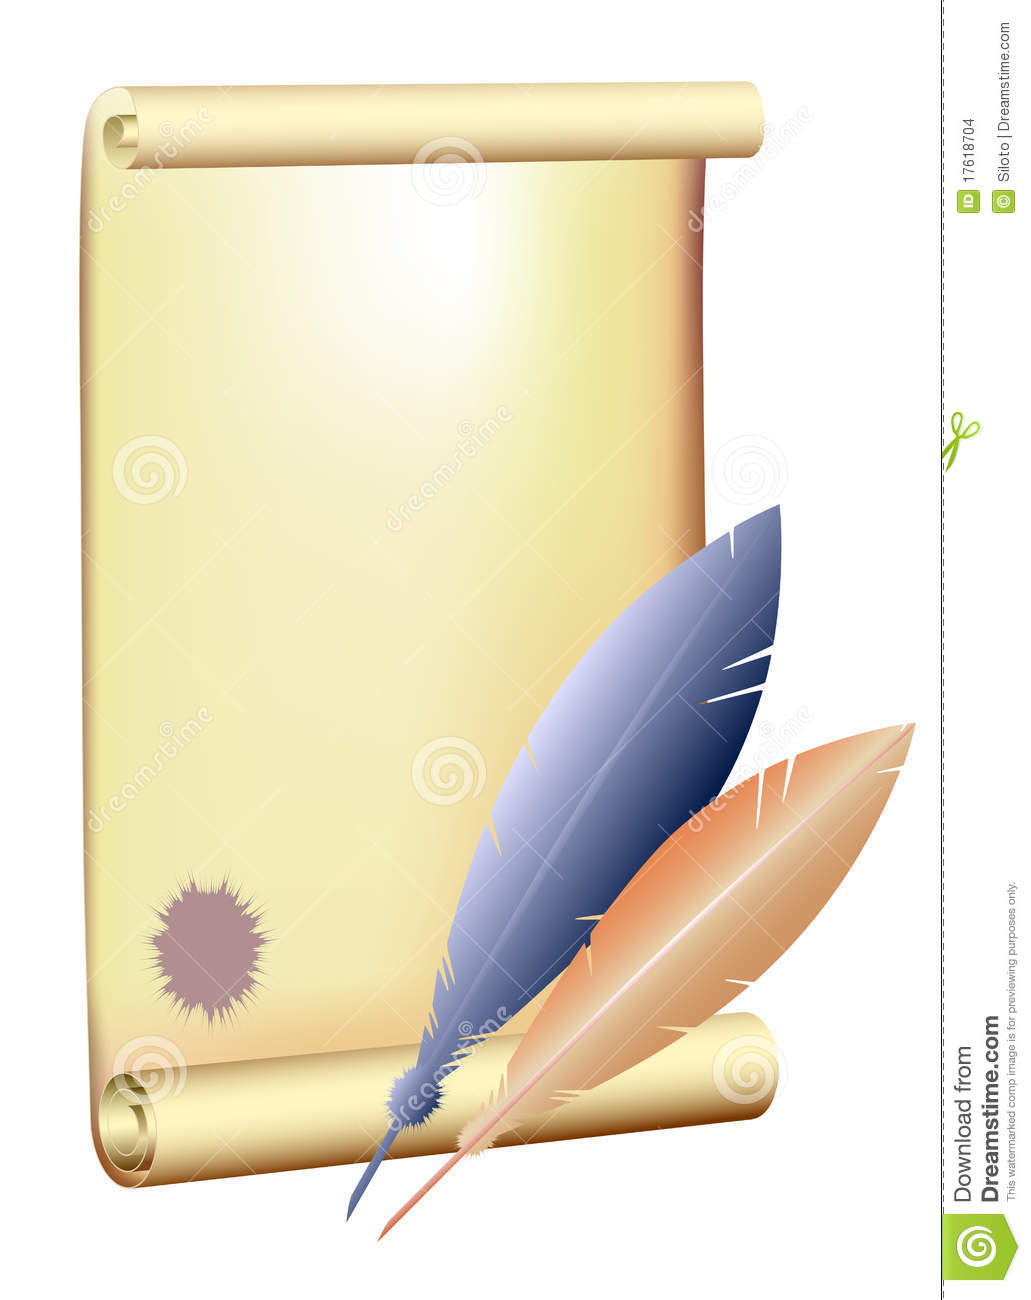 quill and parchment clipart - photo #19